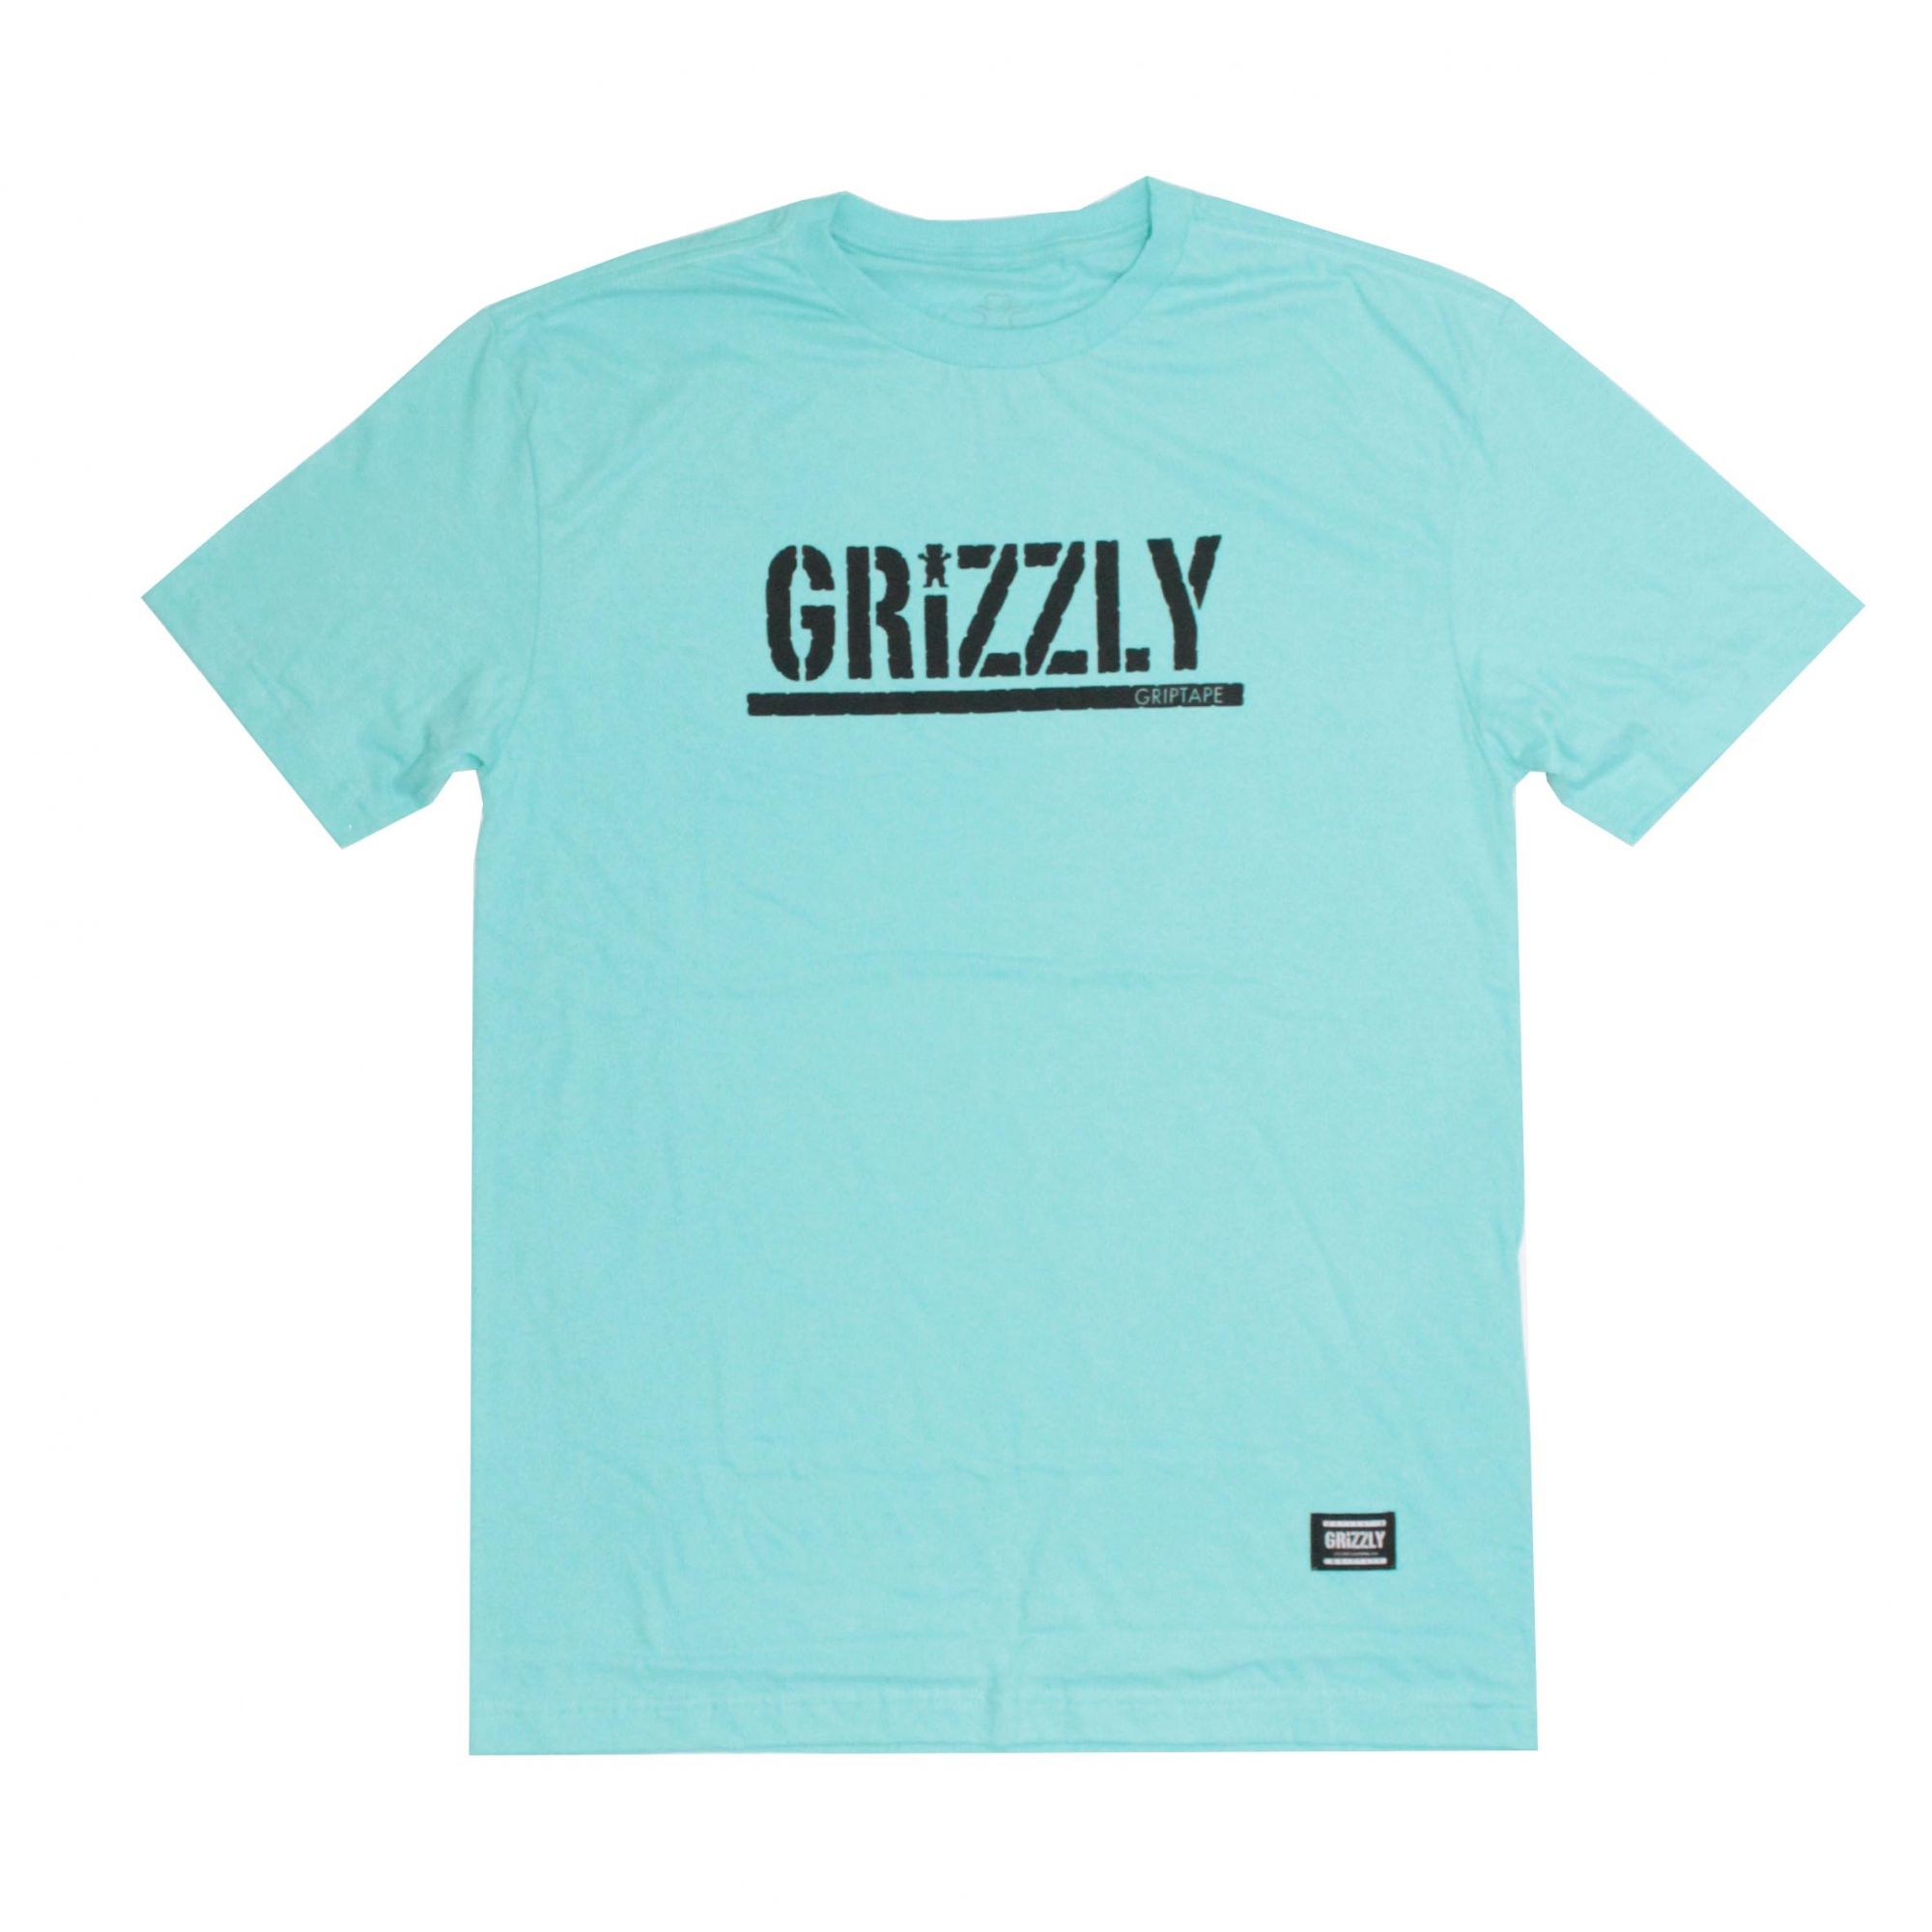 Camiseta Grizzly Stamped - Verde Agua/Preto